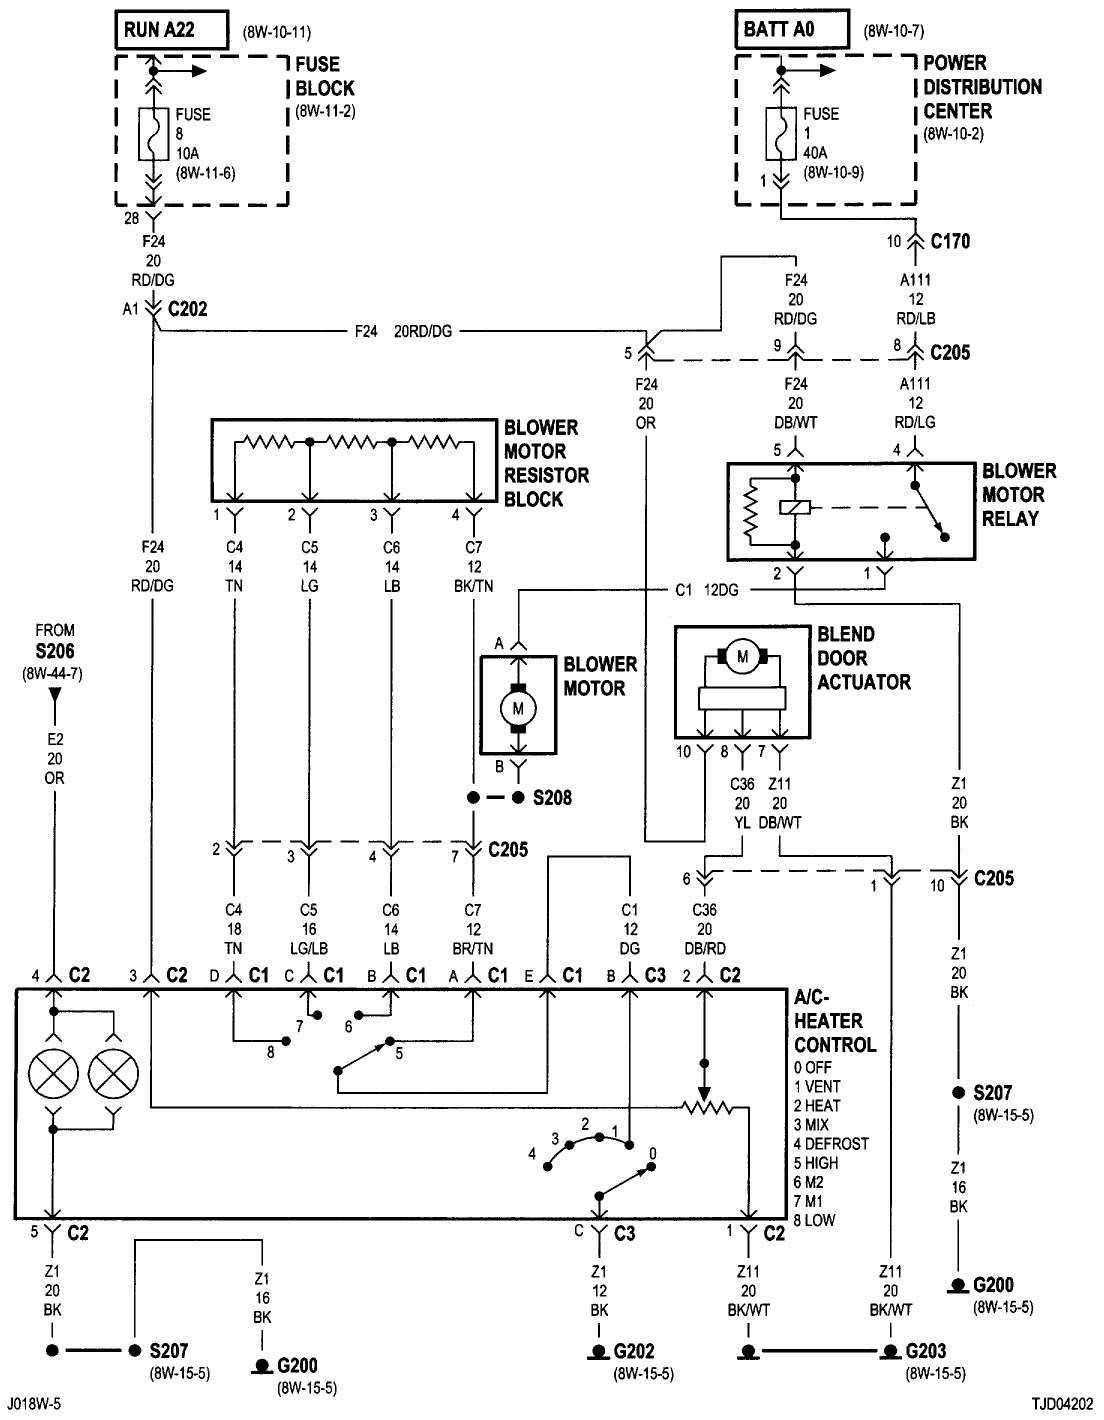 2010 jeep wrangler wiring diagram wiring diagram for 2002 jeep wrangler wiring diagram e8  wiring diagram for 2002 jeep wrangler